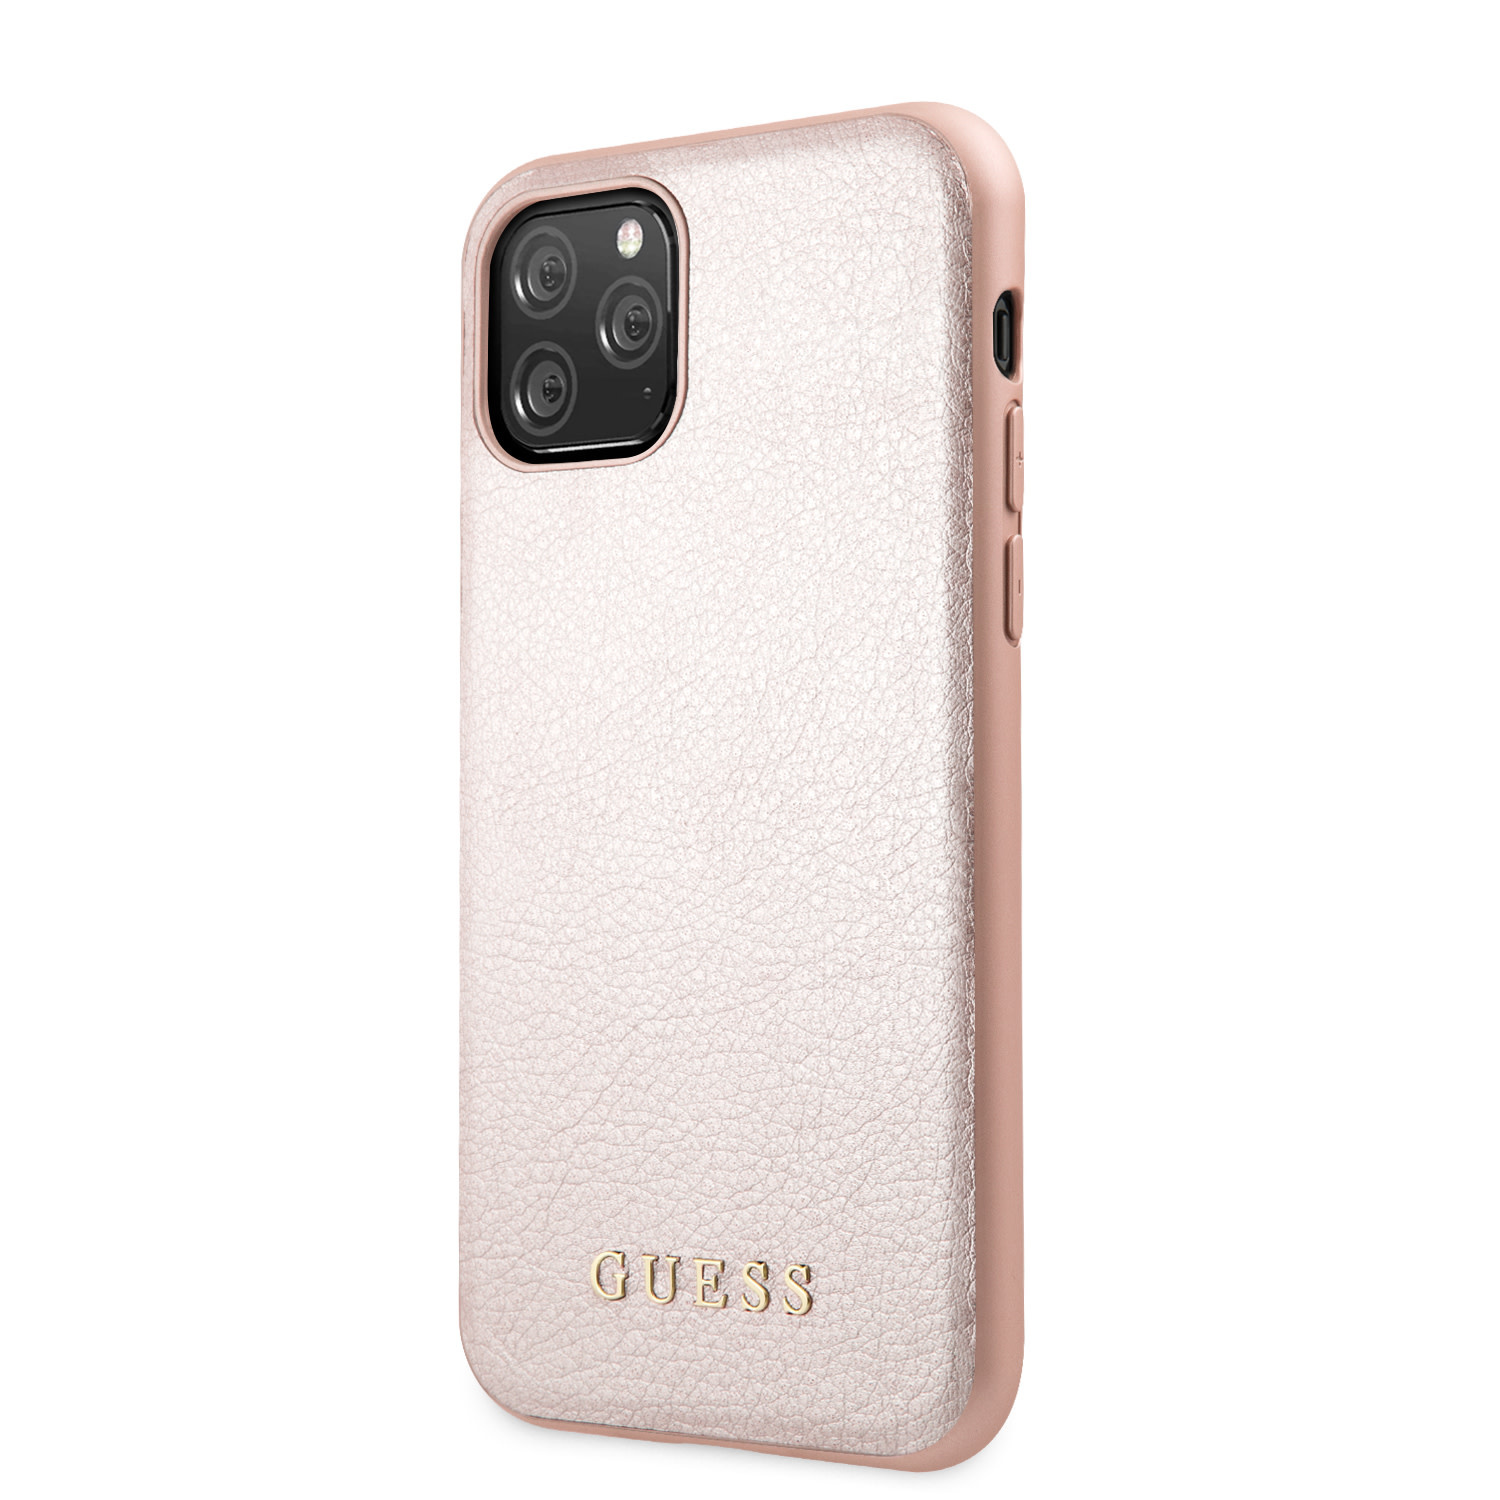 Guess Backcover hoes Rose Goud voor de iPhone 11 Pro Max